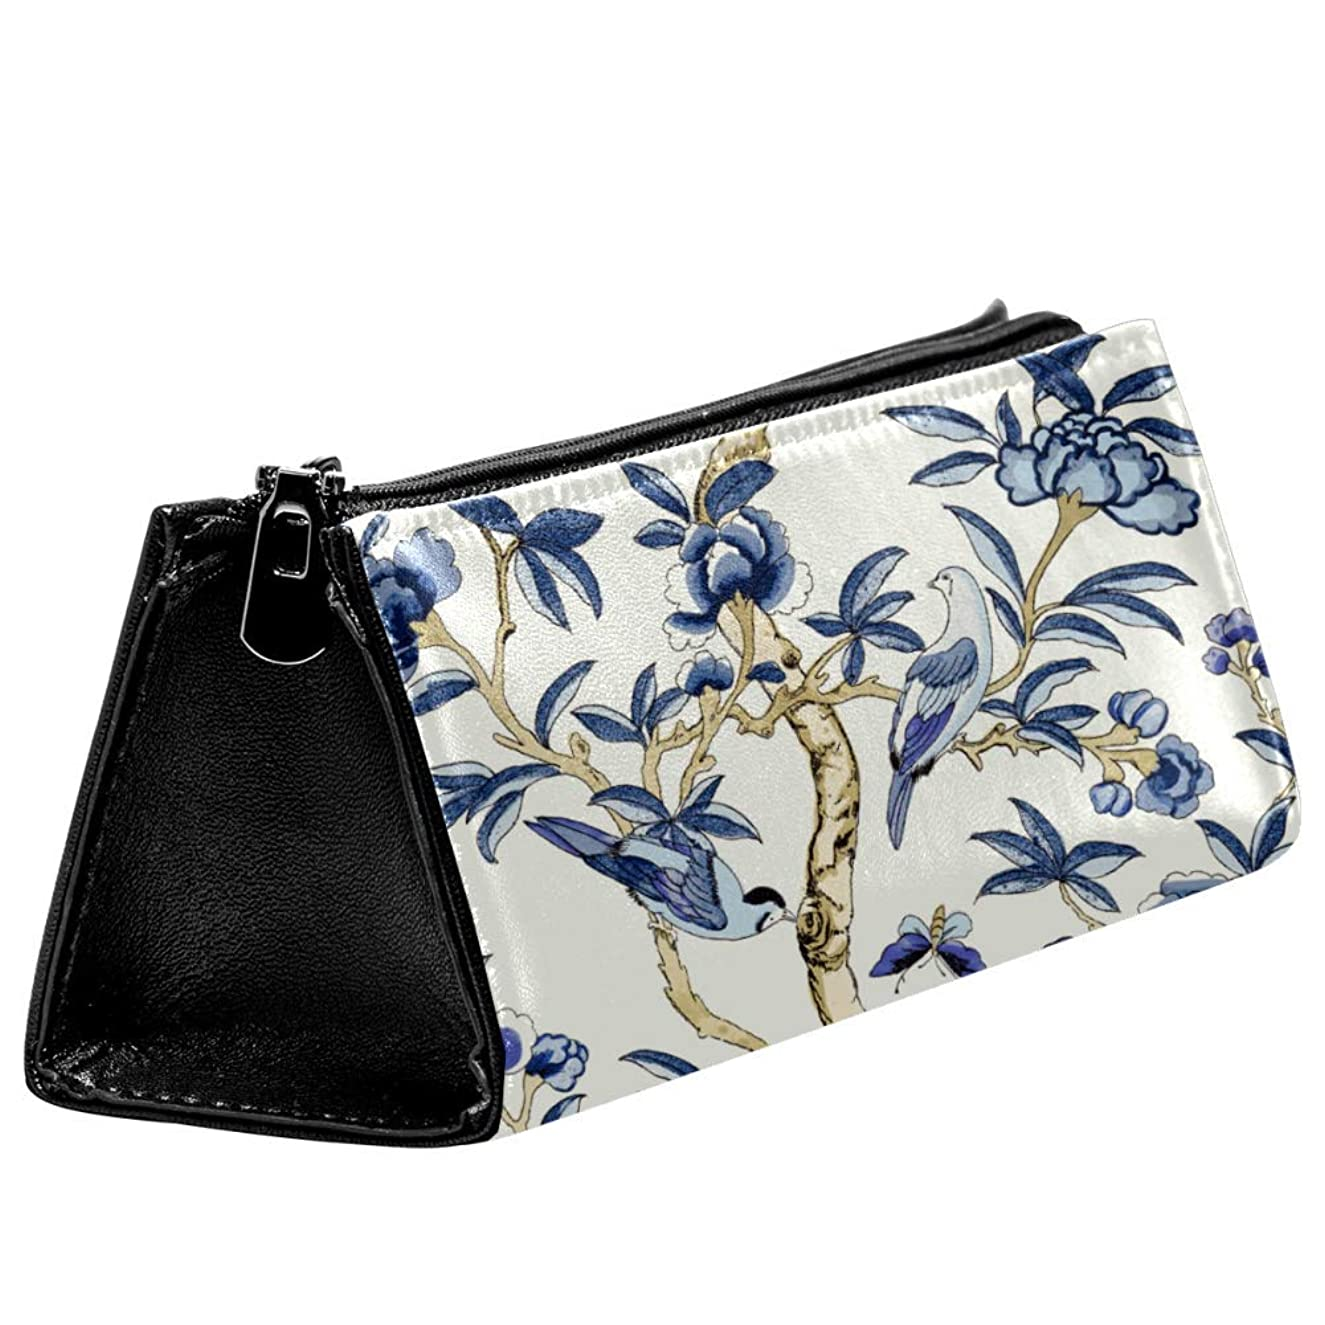 Anmarco Blue Floral and Bird Pen Bag Stationery Pouch Pencil Bag Cosmetic Pouch Bag Compact Zipper Bag